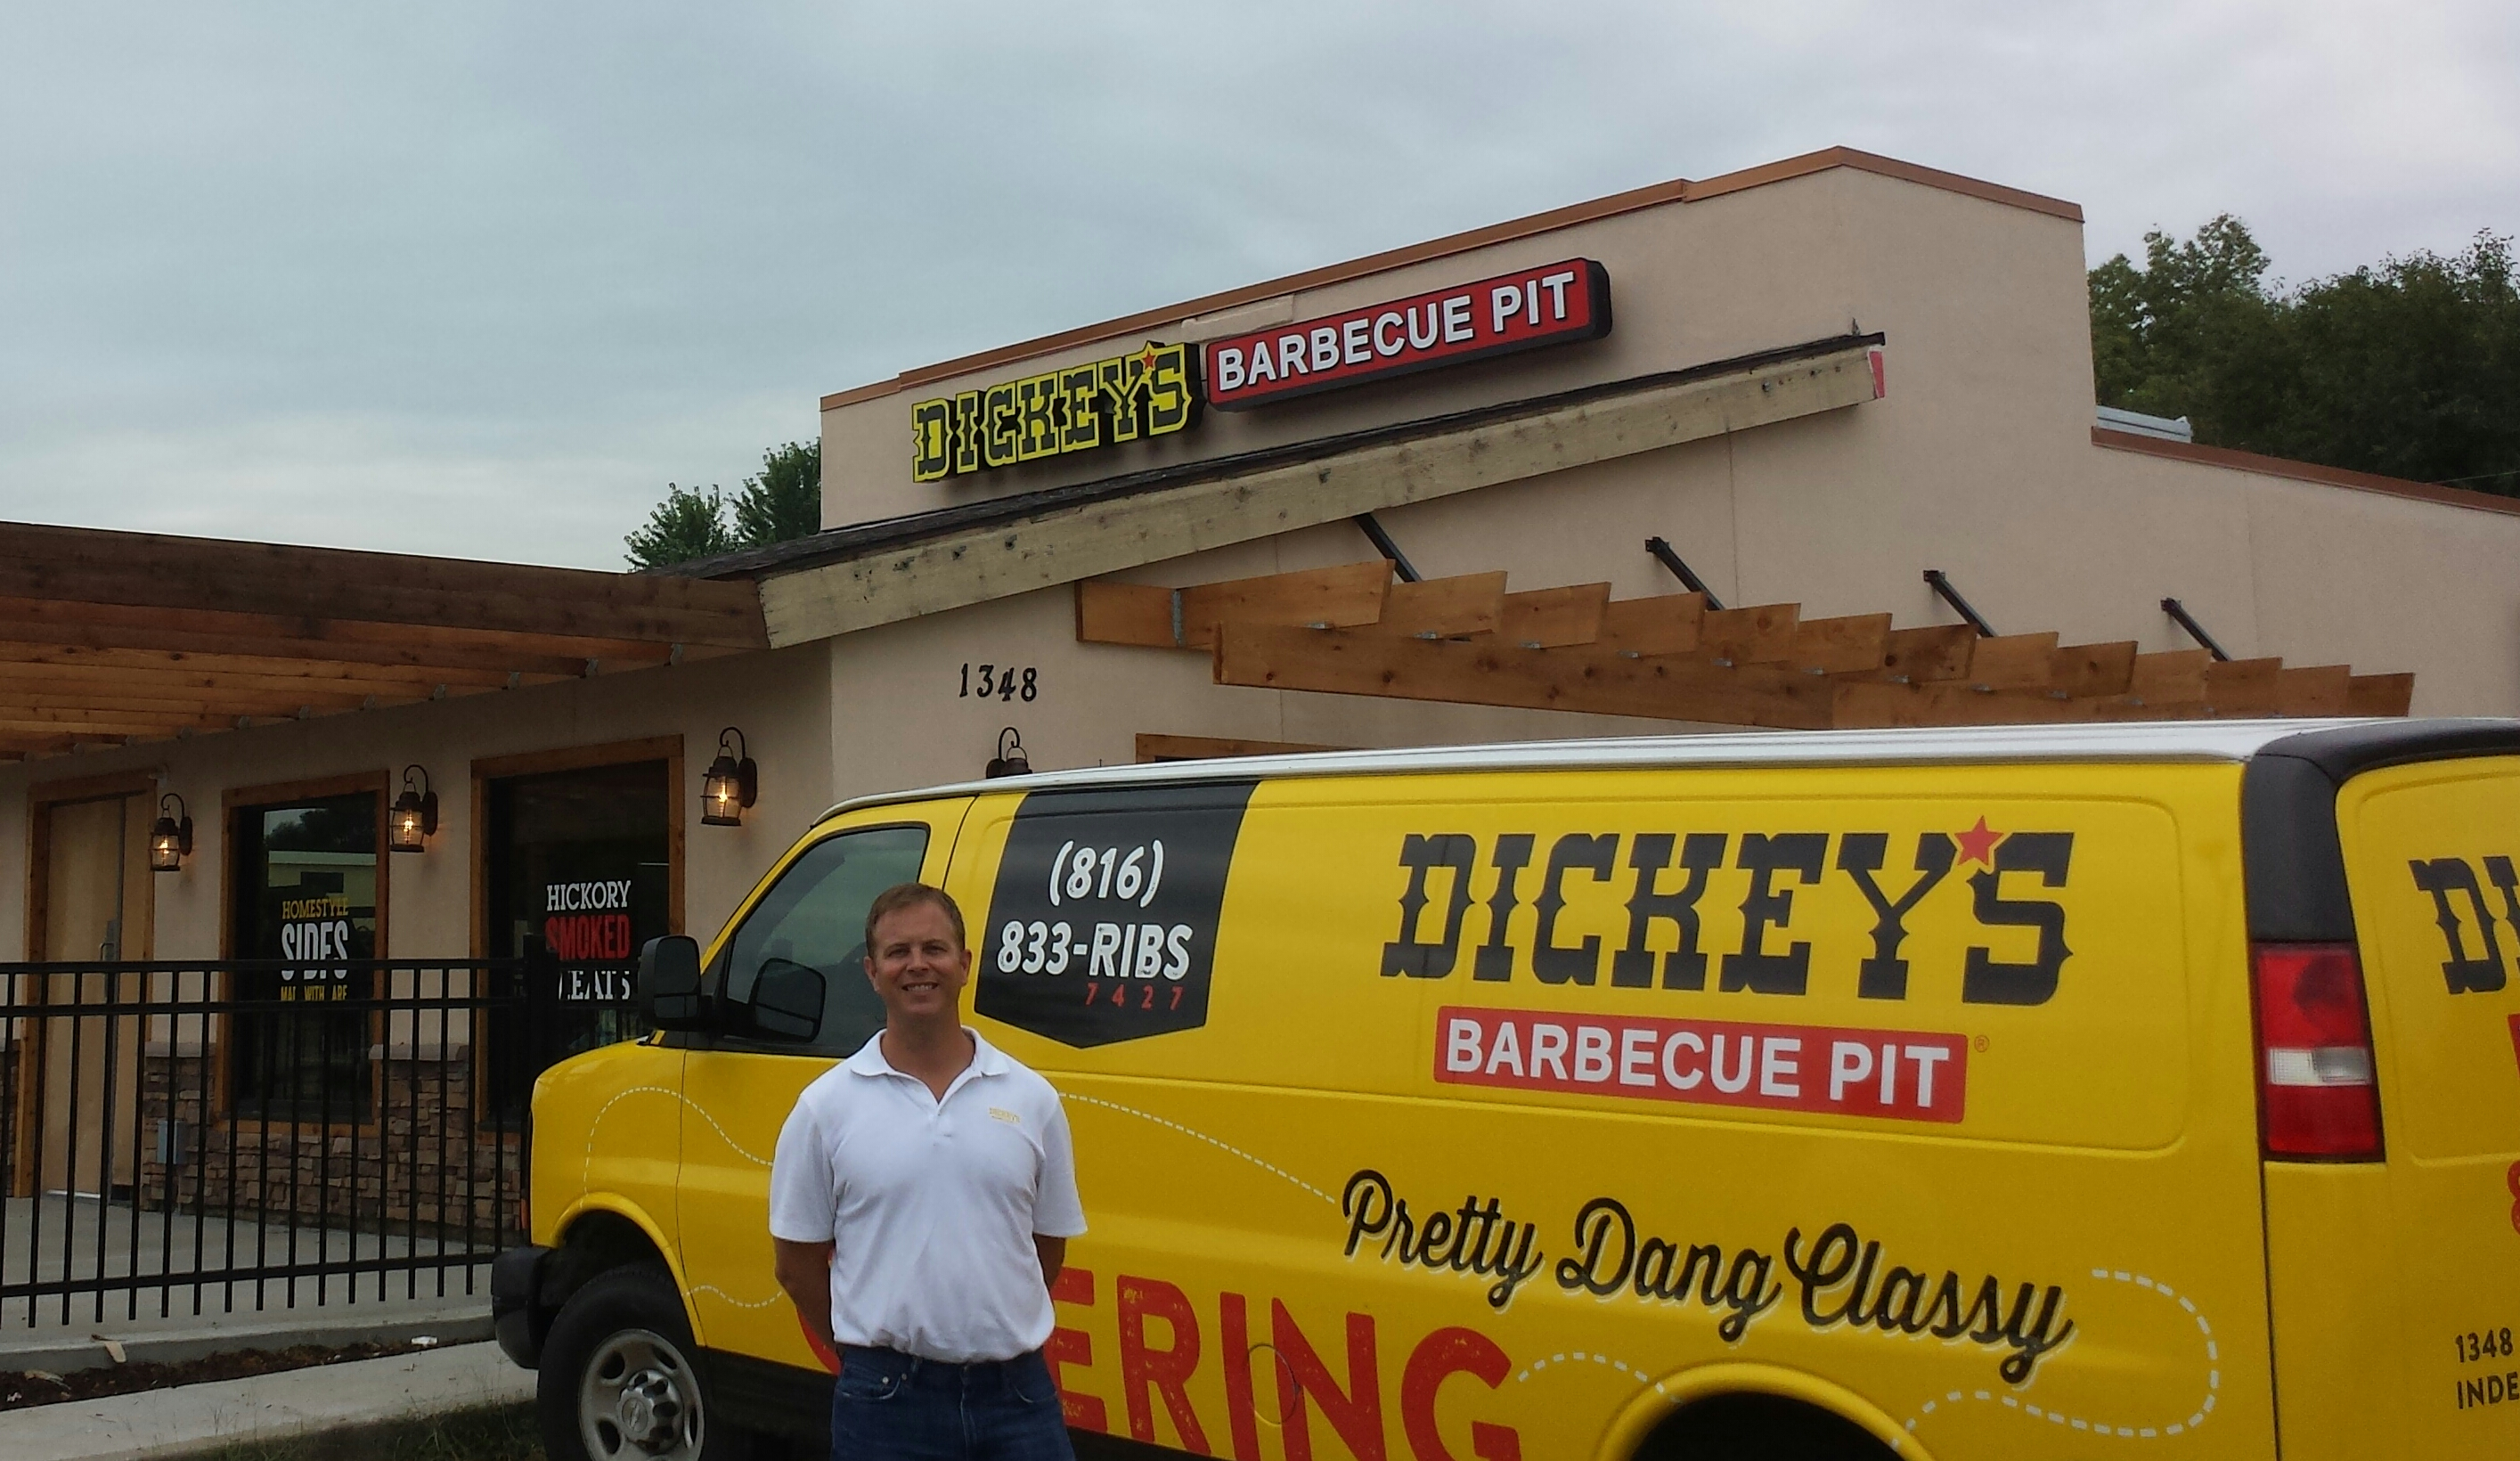 Servin' Up Some Texas-Style Barbecue: Dickey's Barbecue Pit opens new location in Wichita, KS